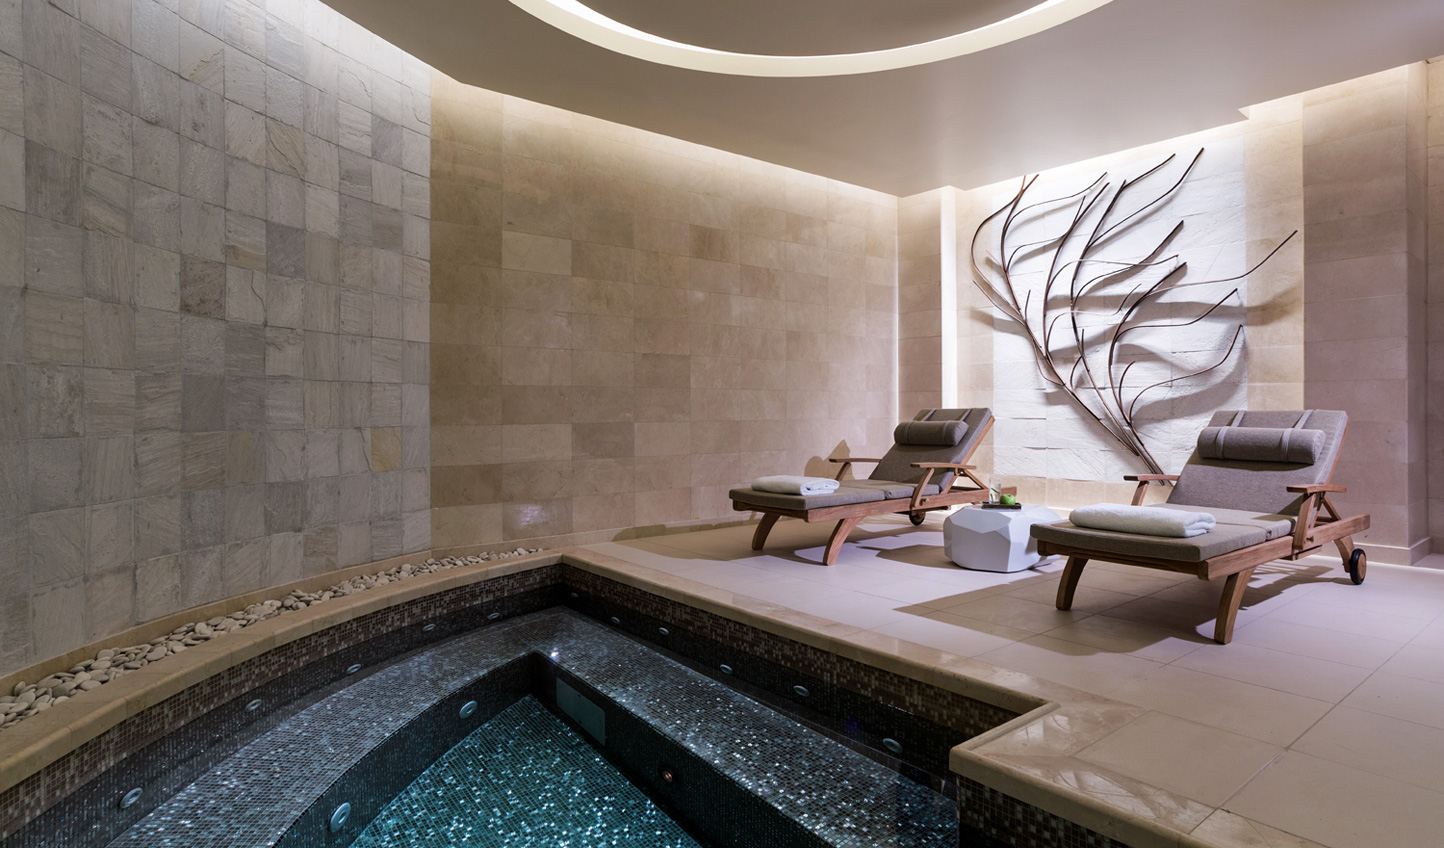 The intimate plunge pool is just one highlight of visiting the Rosewood Sense Spa